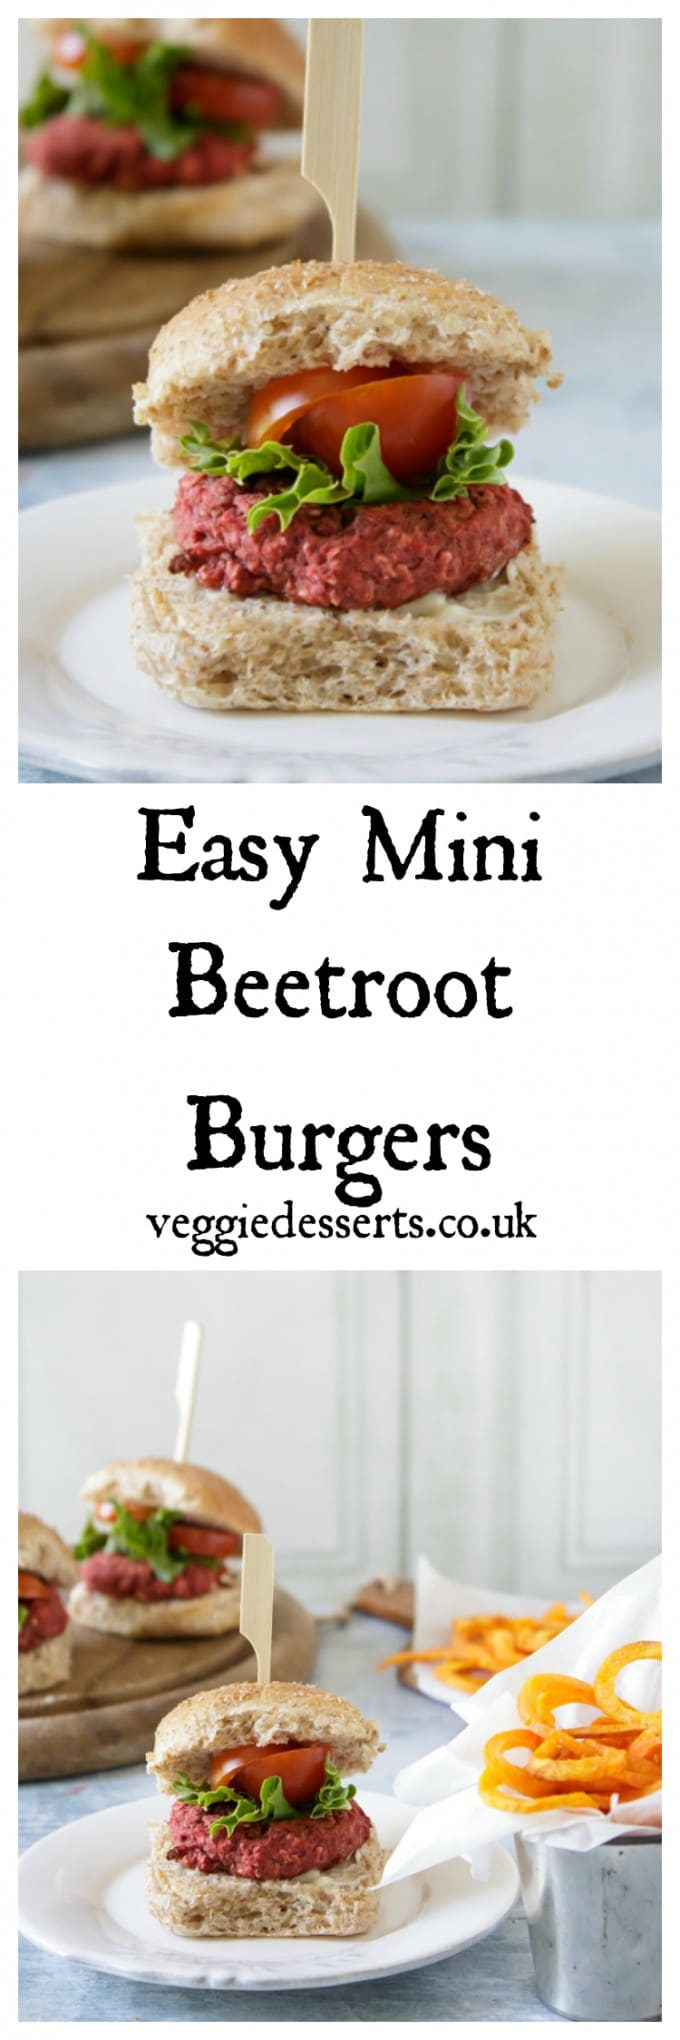 Burgers, with text: Easy Mini Beetroot Burgers.